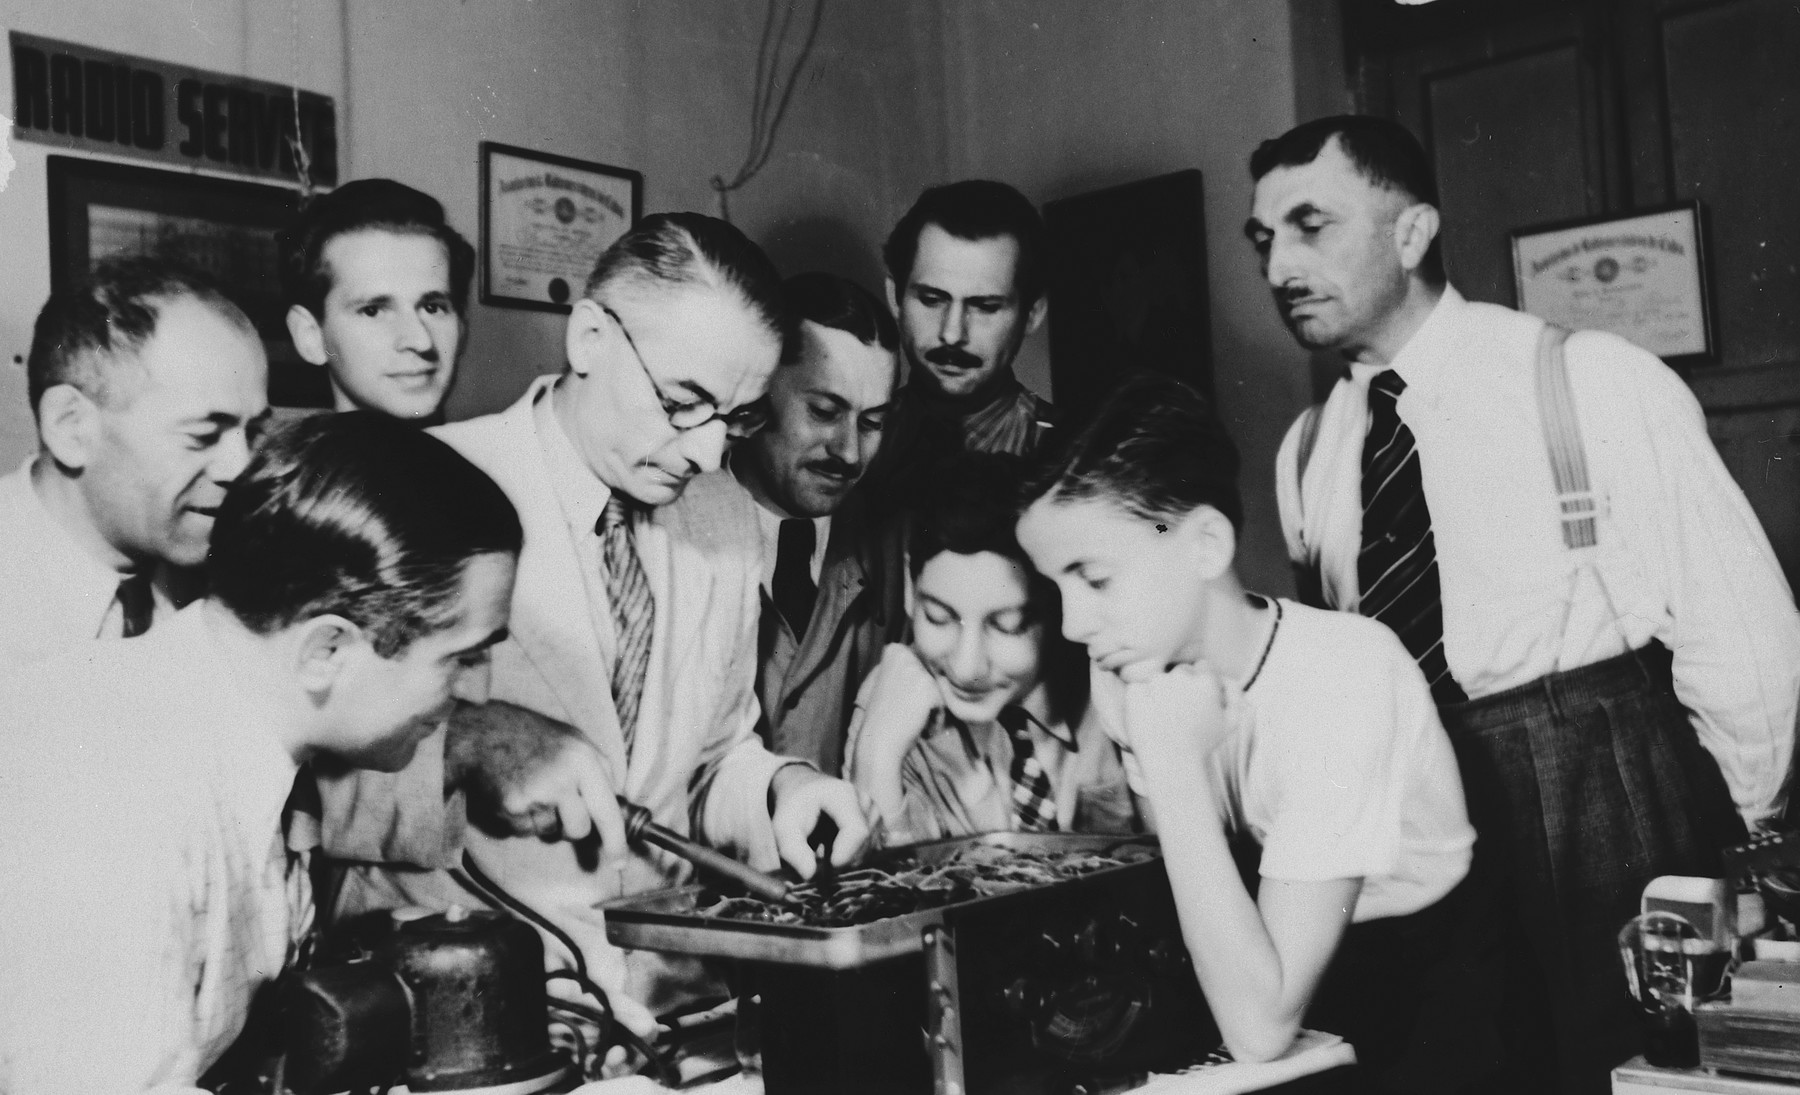 German-Jewish refugees study radio repair in a vocational education class in Cuba.  Among those pictured is Henry Fink, uncle of the donor.